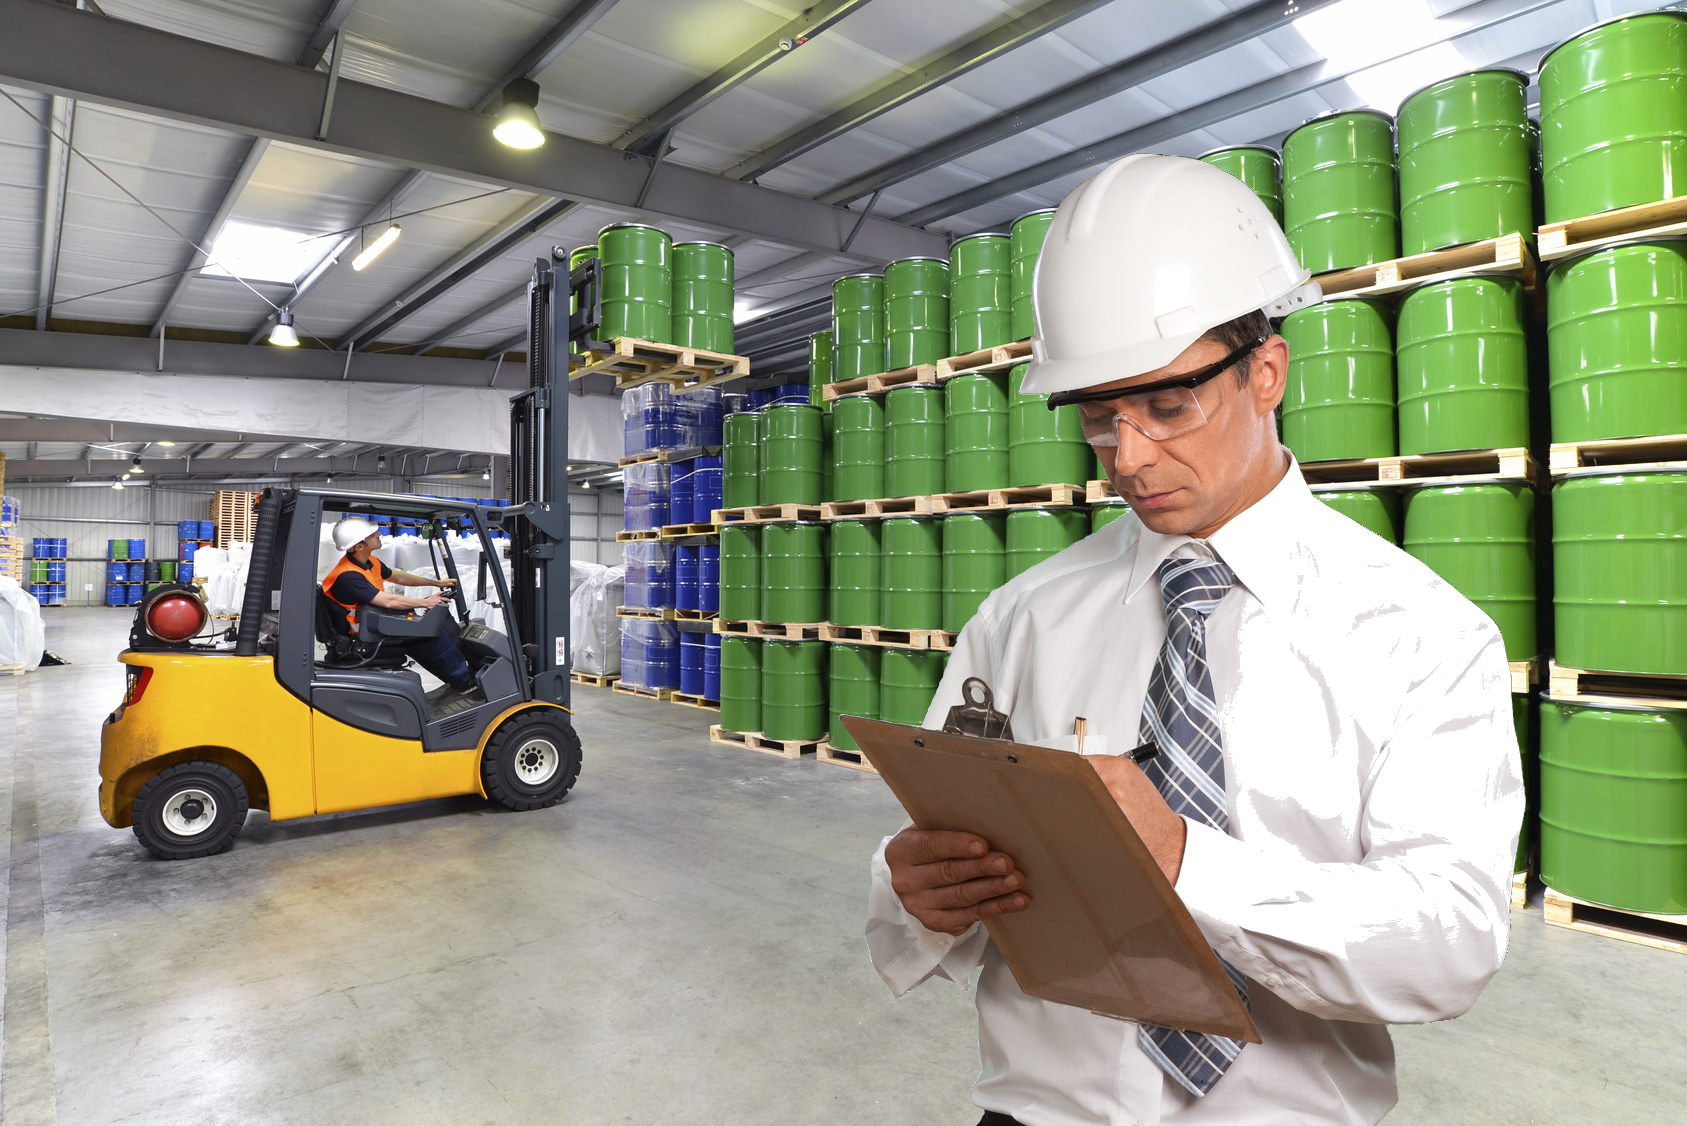 Osha Forklift Training Certification First Quality Forklift Training